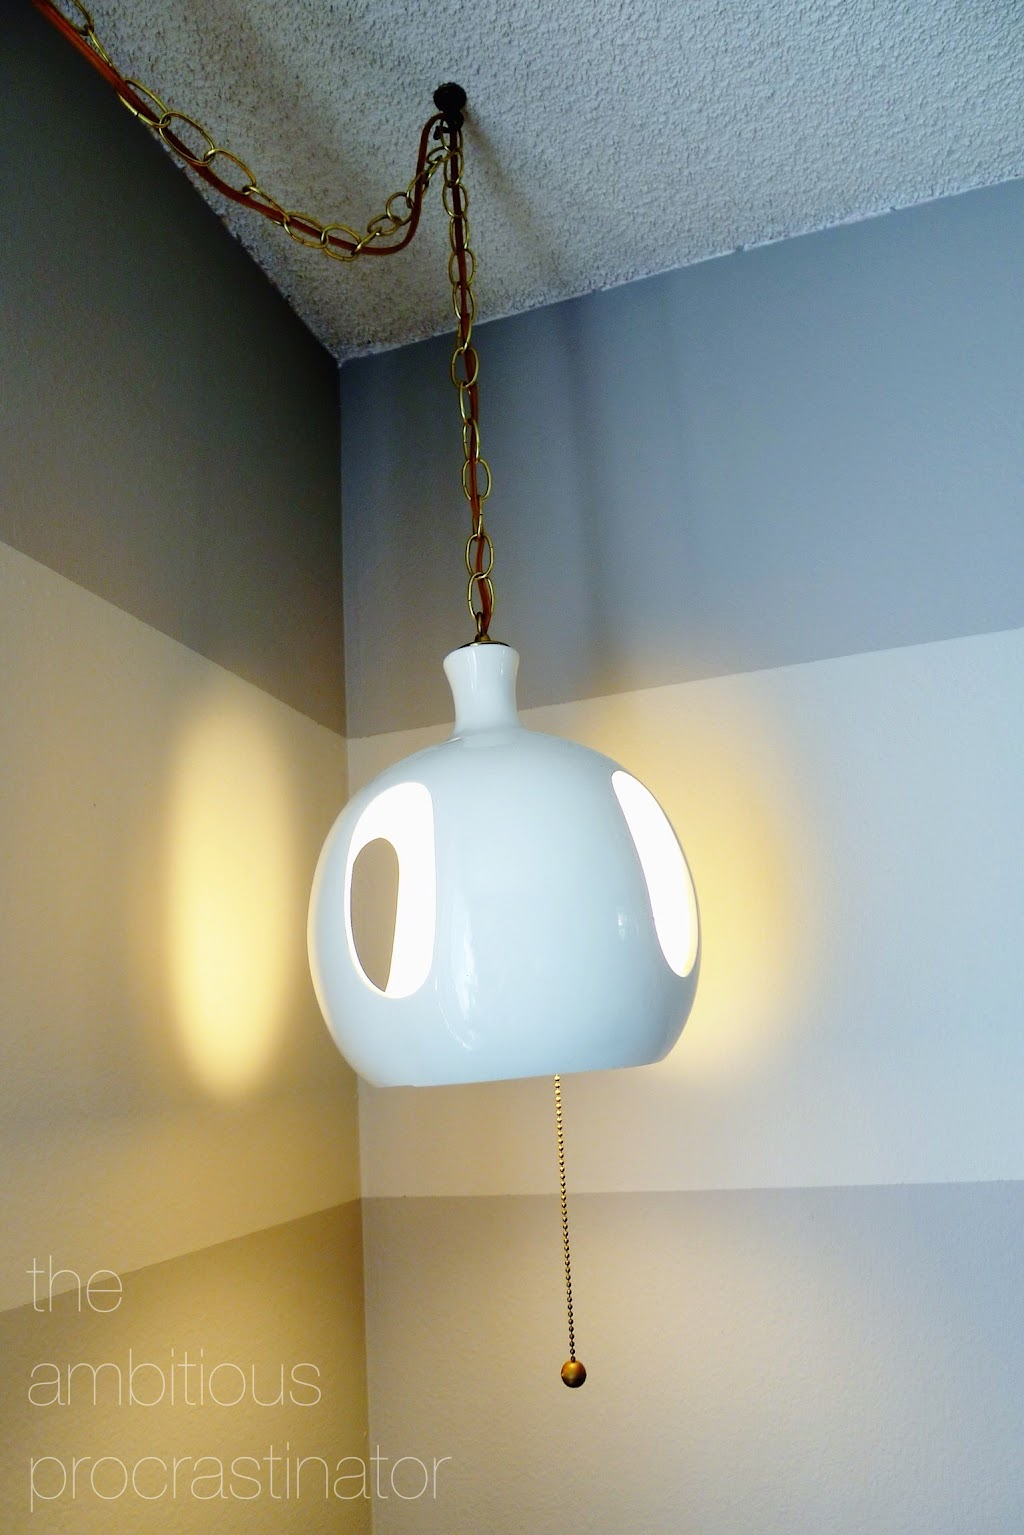 I Know Brass Is All The Rage Right Now But M Just Not That Cool Think Might Like To Put Some Orb Spray Paint On Chain Add